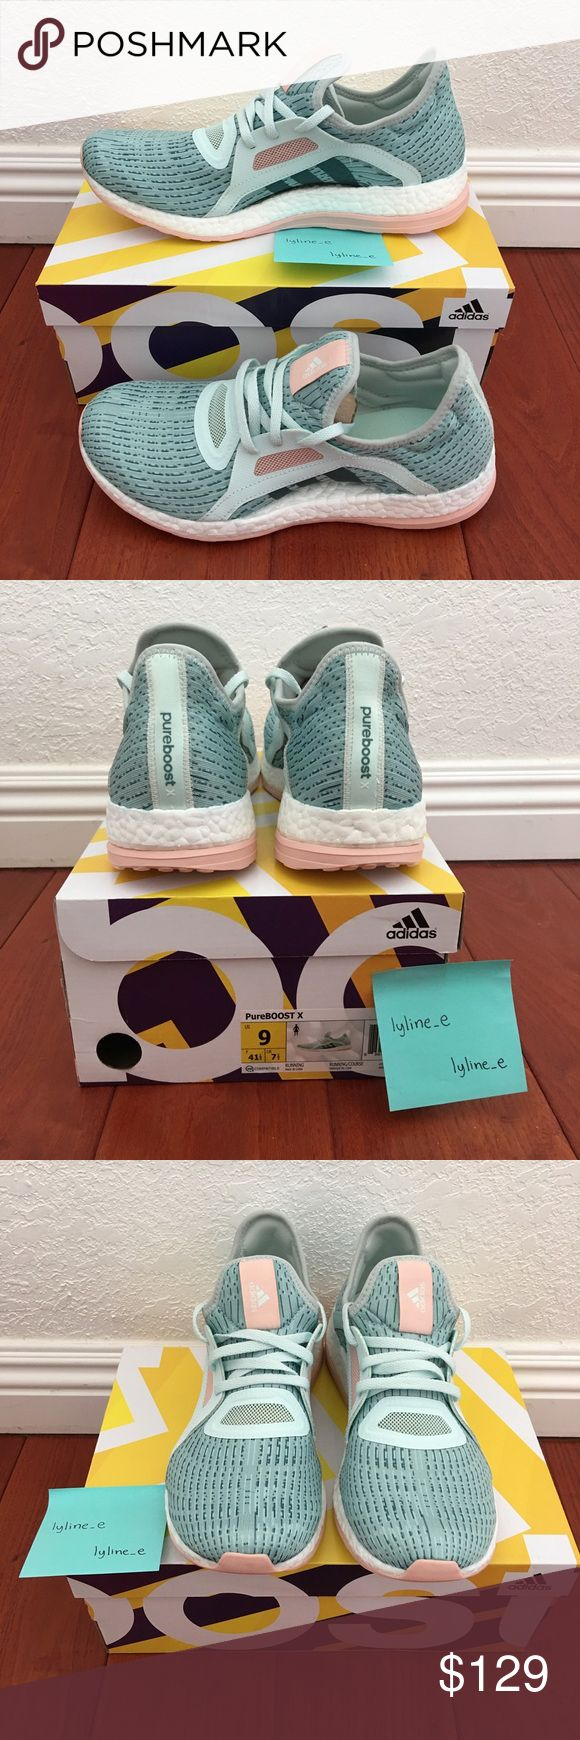 Adidas Pure BOOST X Running Ice Mint Green Brand New Adidas Pure Boost X Running Ice Mint Green in Original Box ready to ship. 100% authentic guaranteed. Women Size 9 US. Will ship double boxed within 24 hours upon receiving payment. Please make sure you order the correct size as no returns or exchanges will be accepted. Adidas Shoes Athletic Shoes